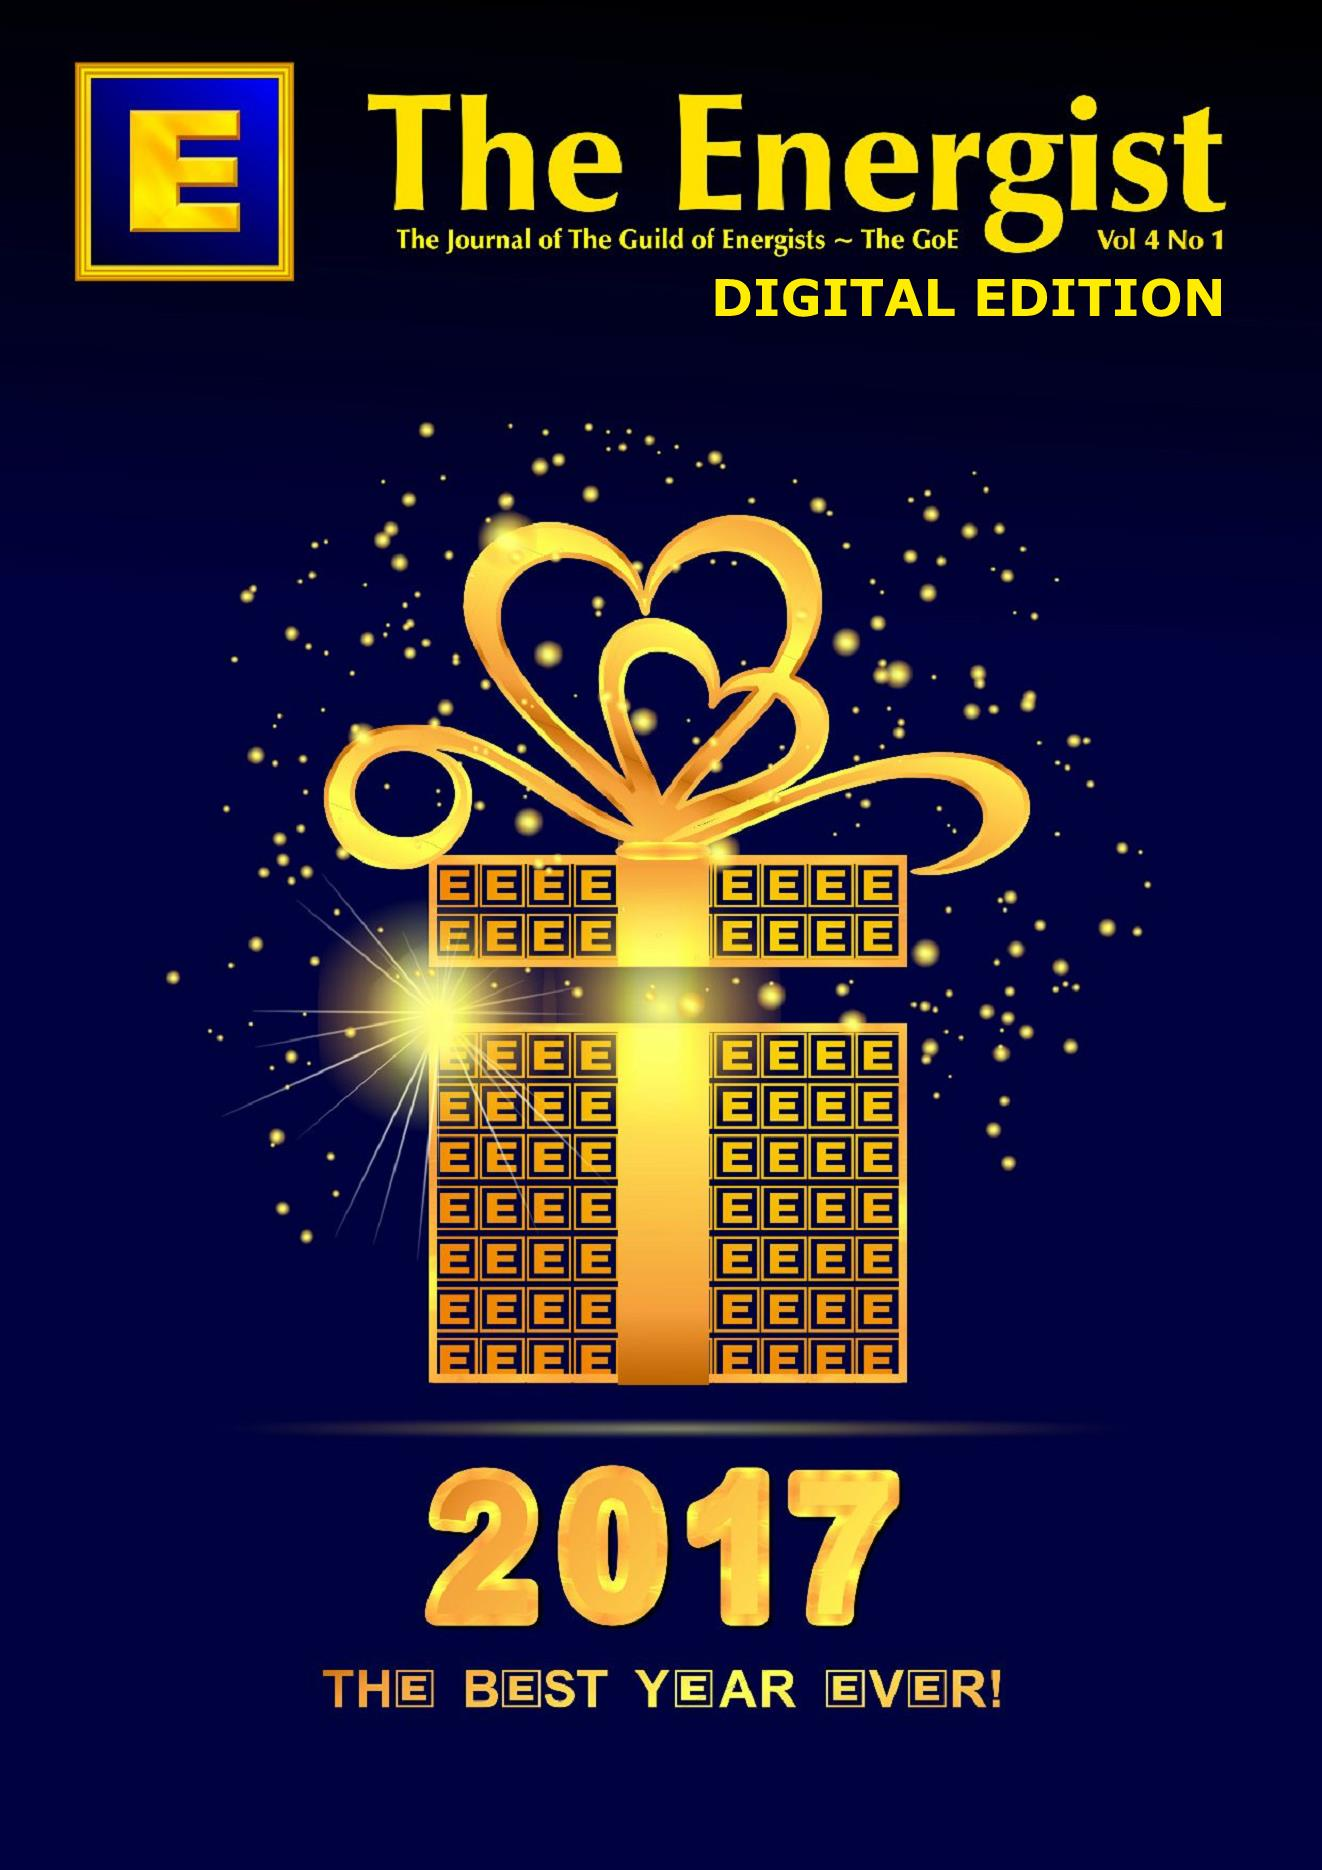 The Energist - Vol 2017.4.1 - The Best Year Ever!